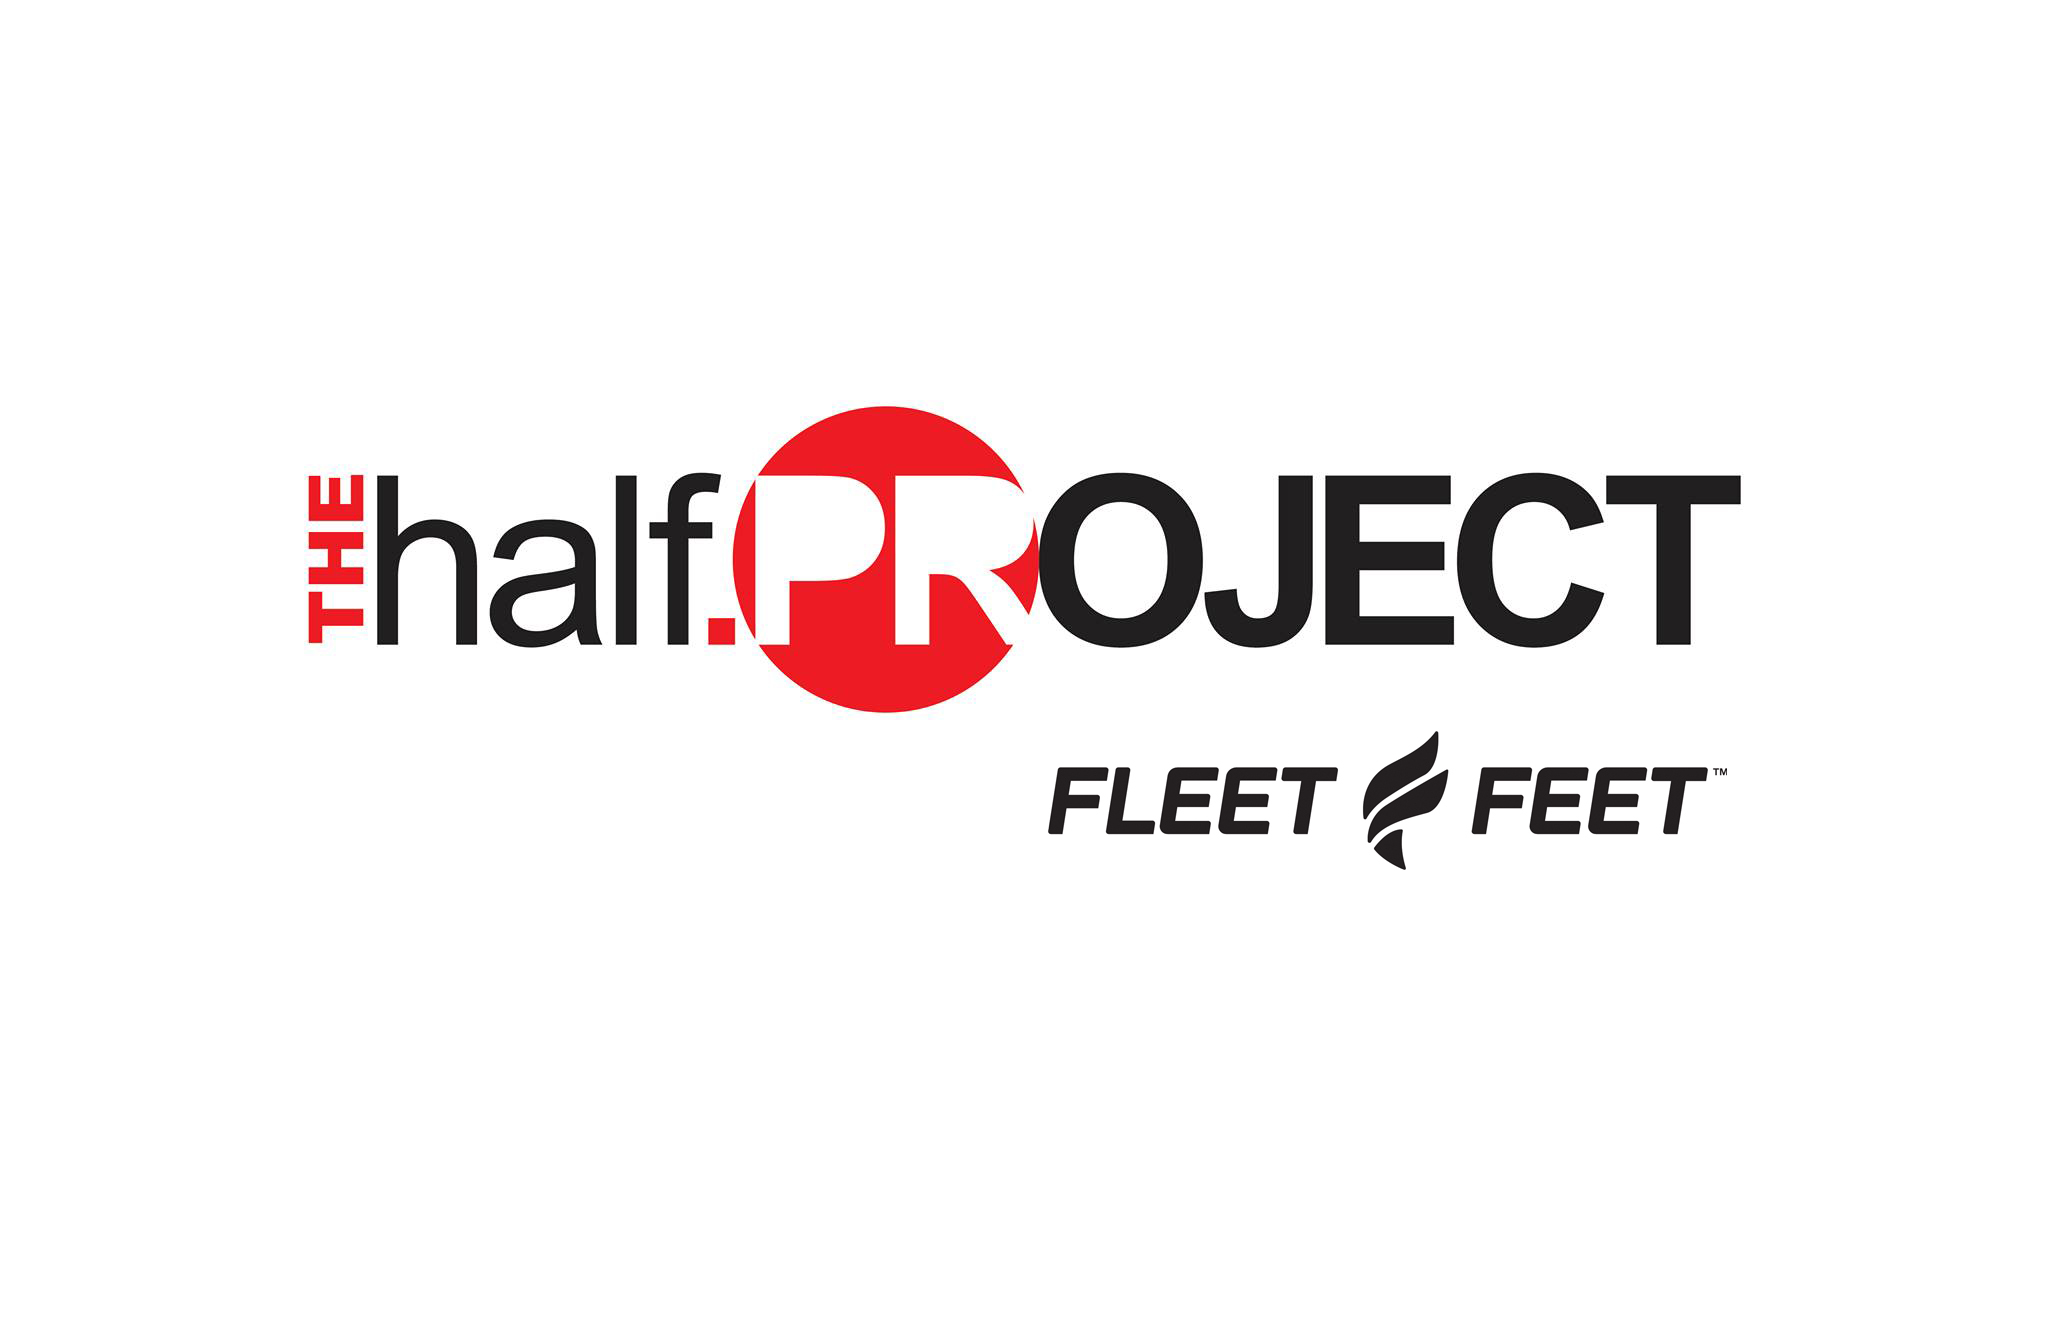 The Half Project